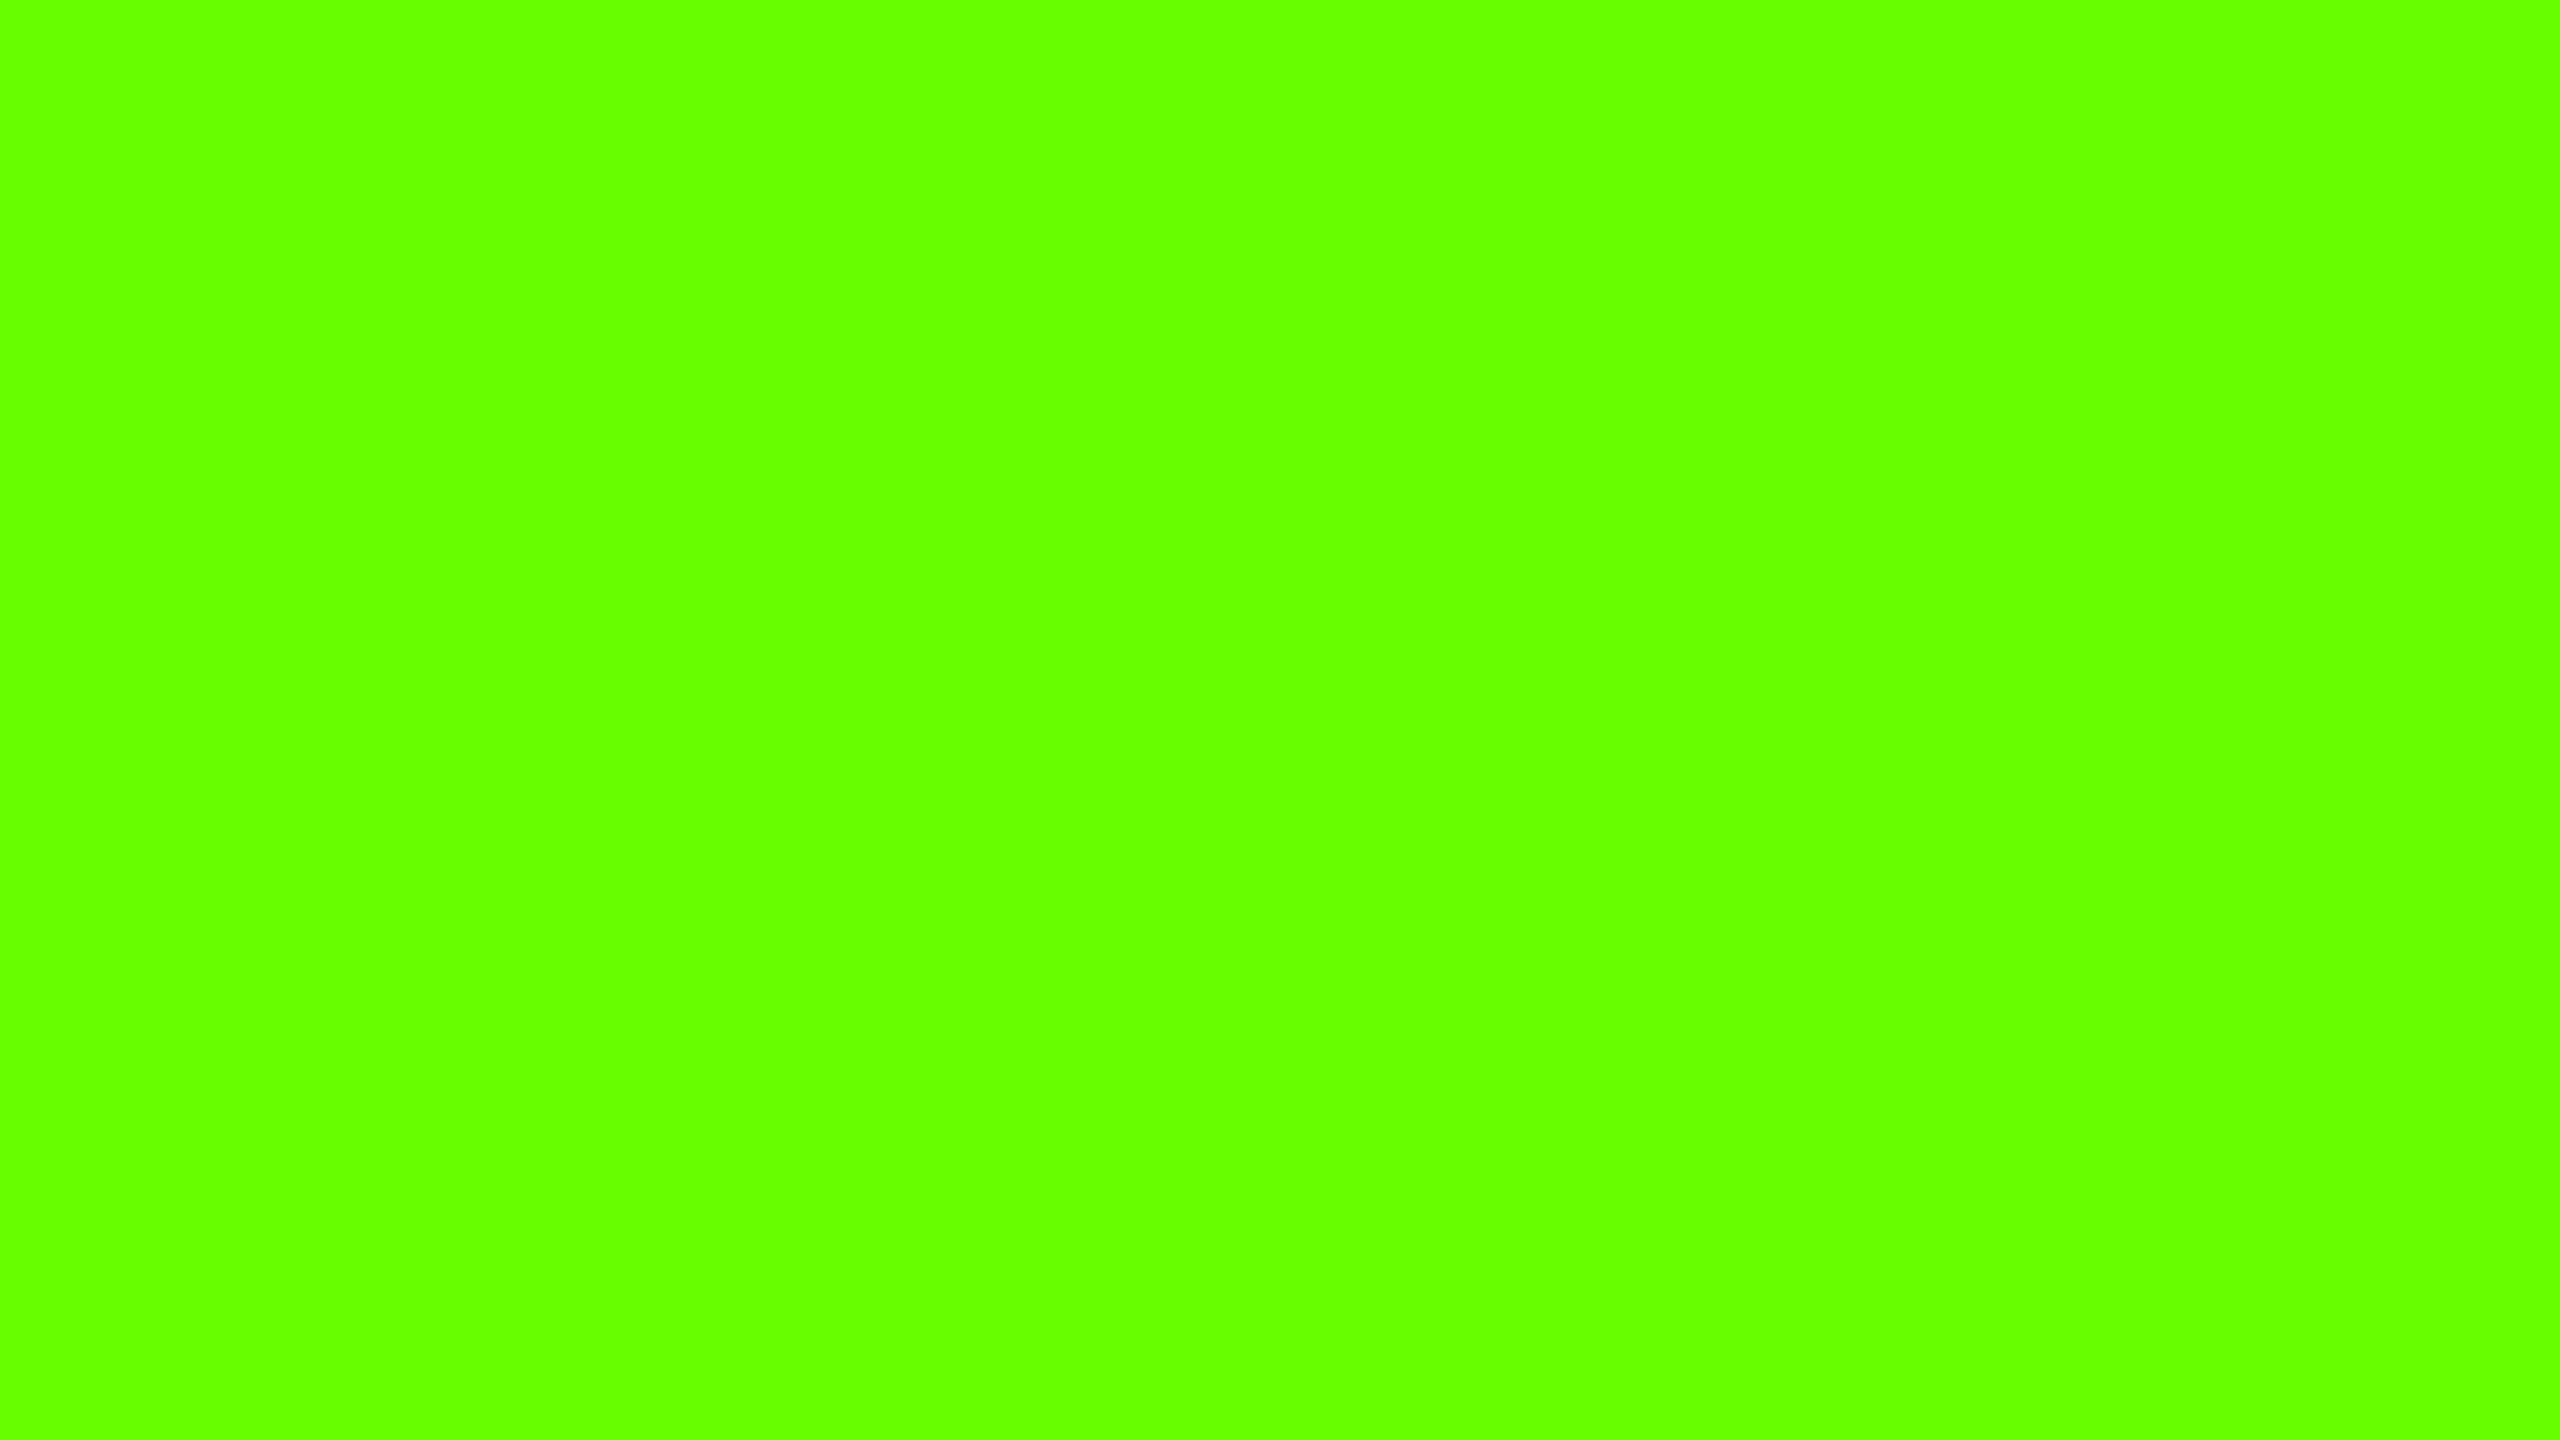 2560x1440  Bright Green Solid Color Background